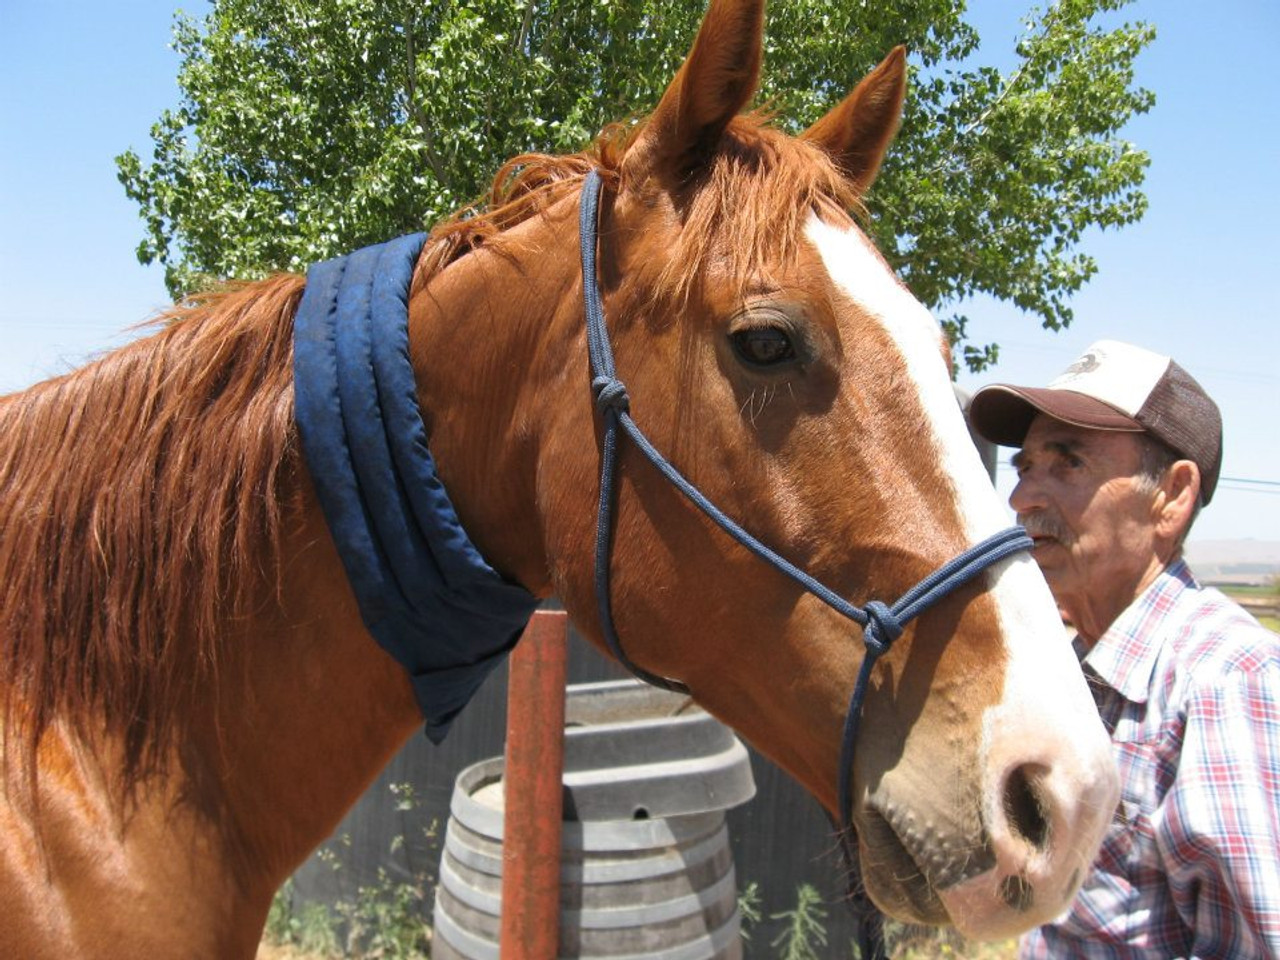 A cool wrap for horses to beat heat stress.